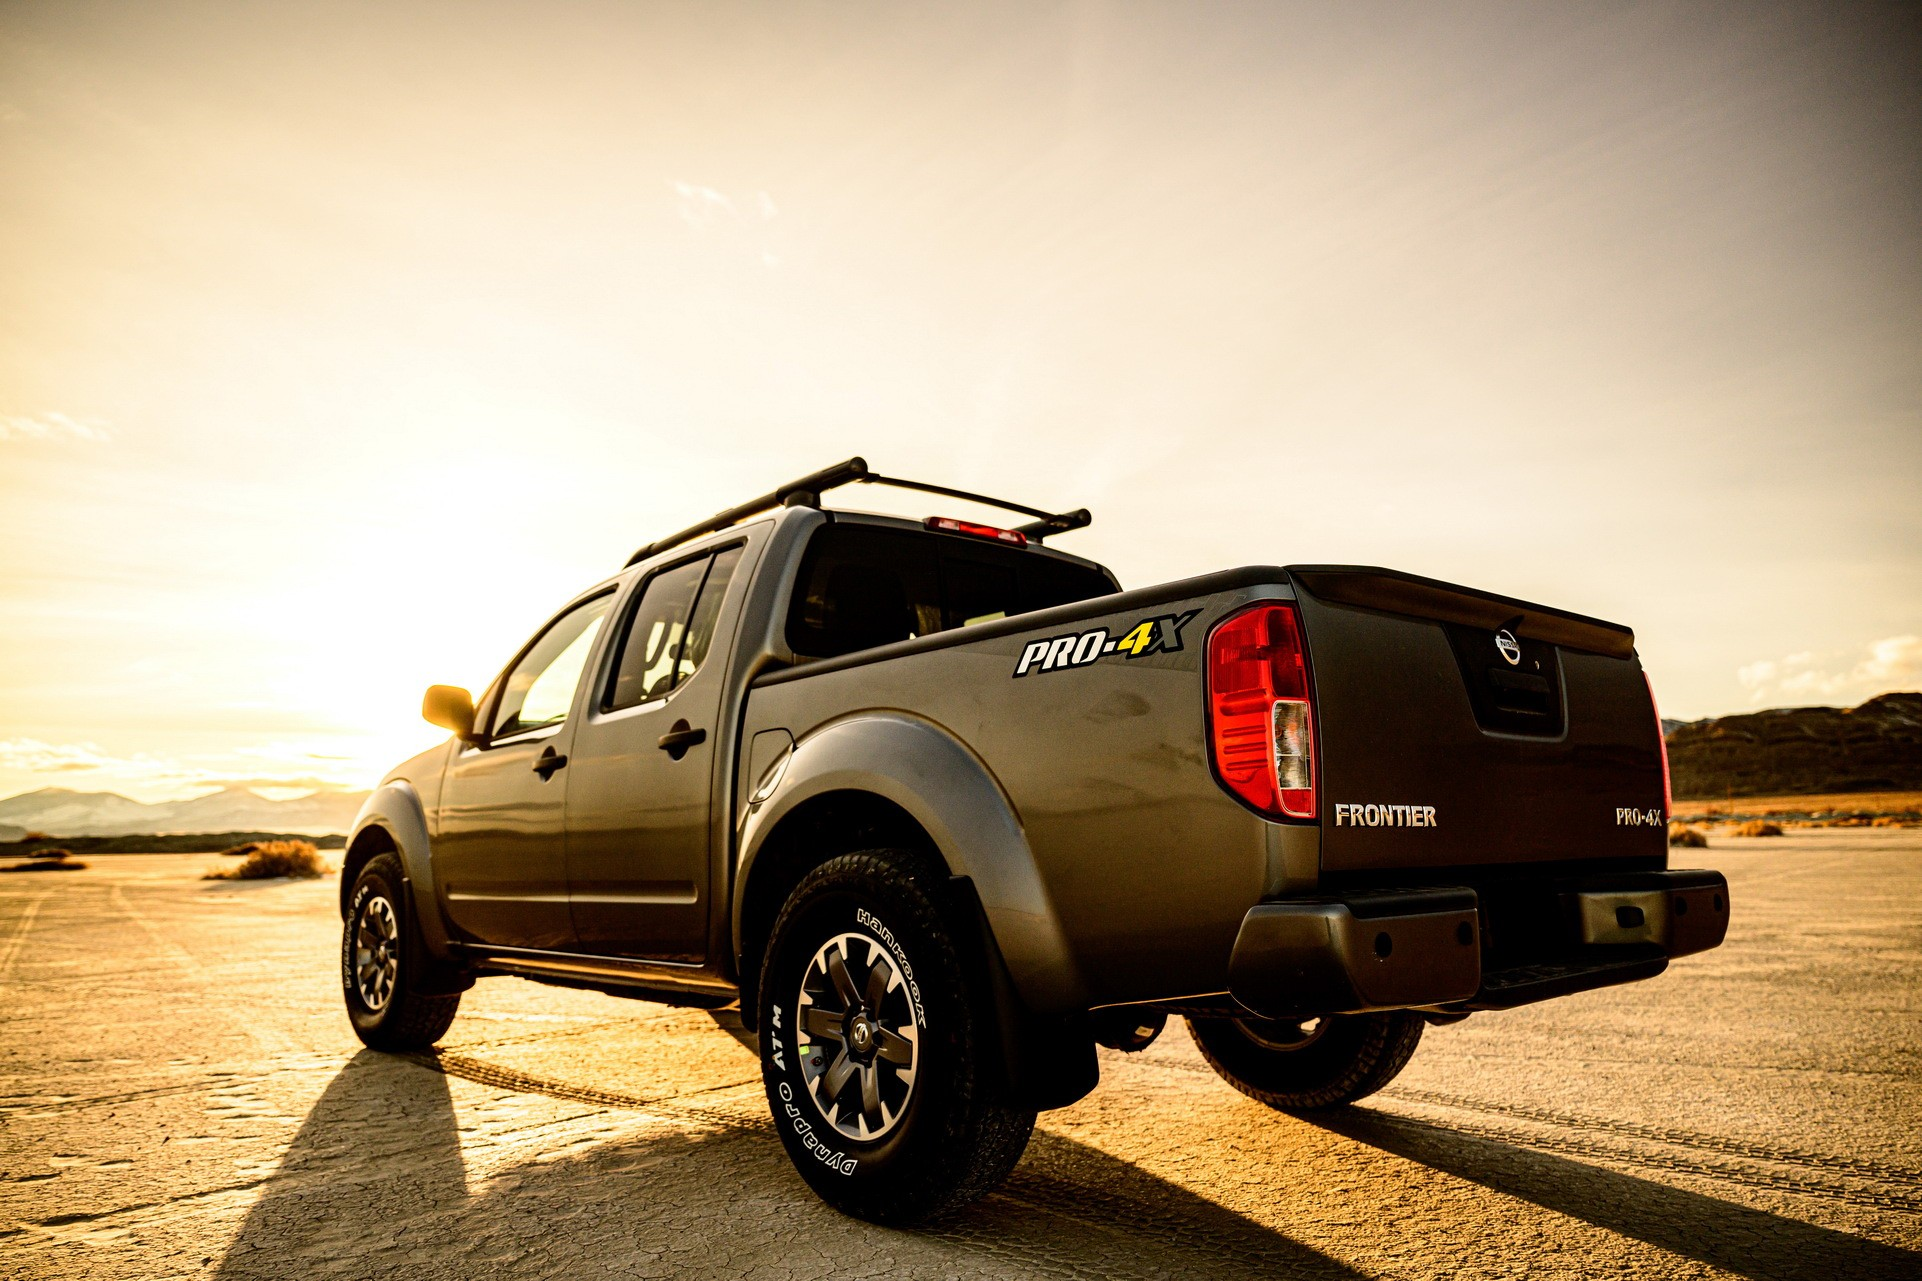 2020 nissan frontier previews 2021 model, features new